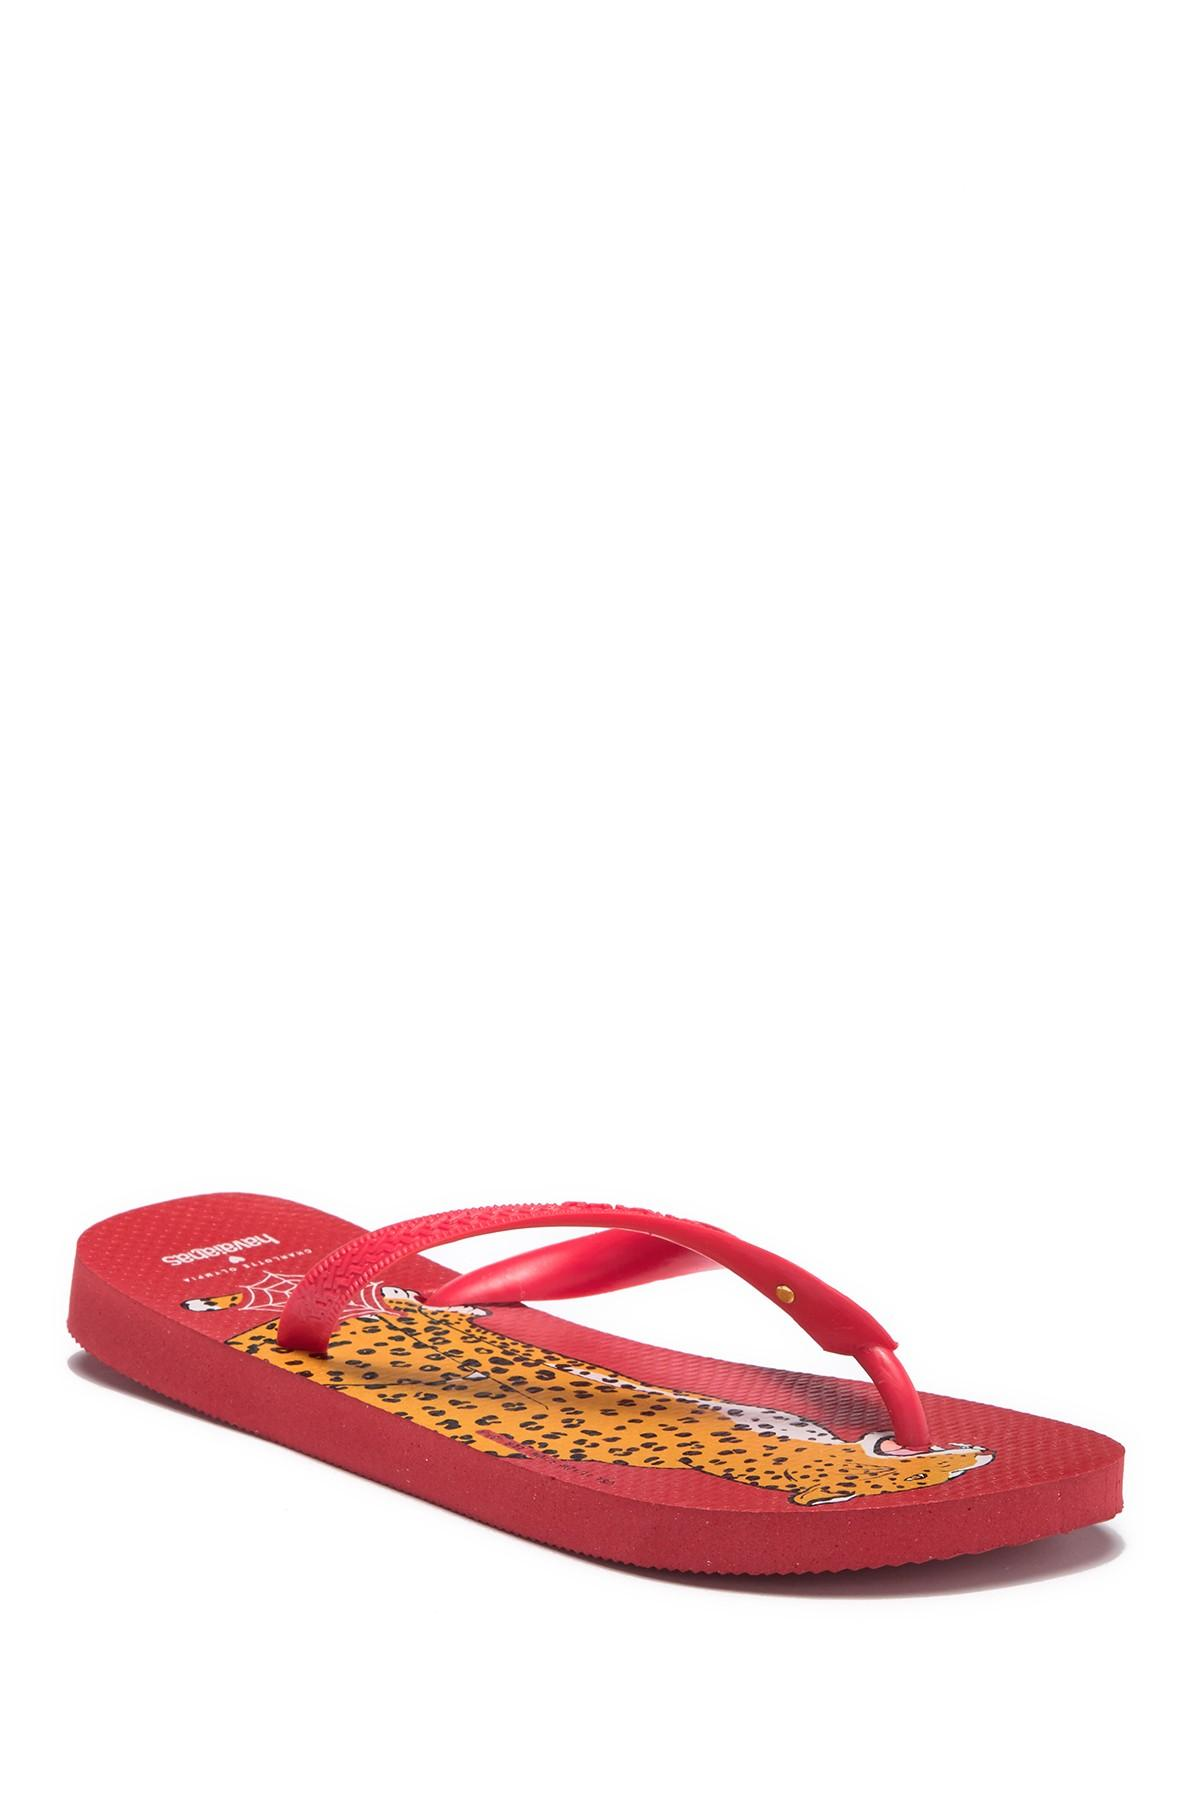 5a671f041 Havaianas - Red Charlotte Olympia Bruce Top Sandal - Lyst. View fullscreen